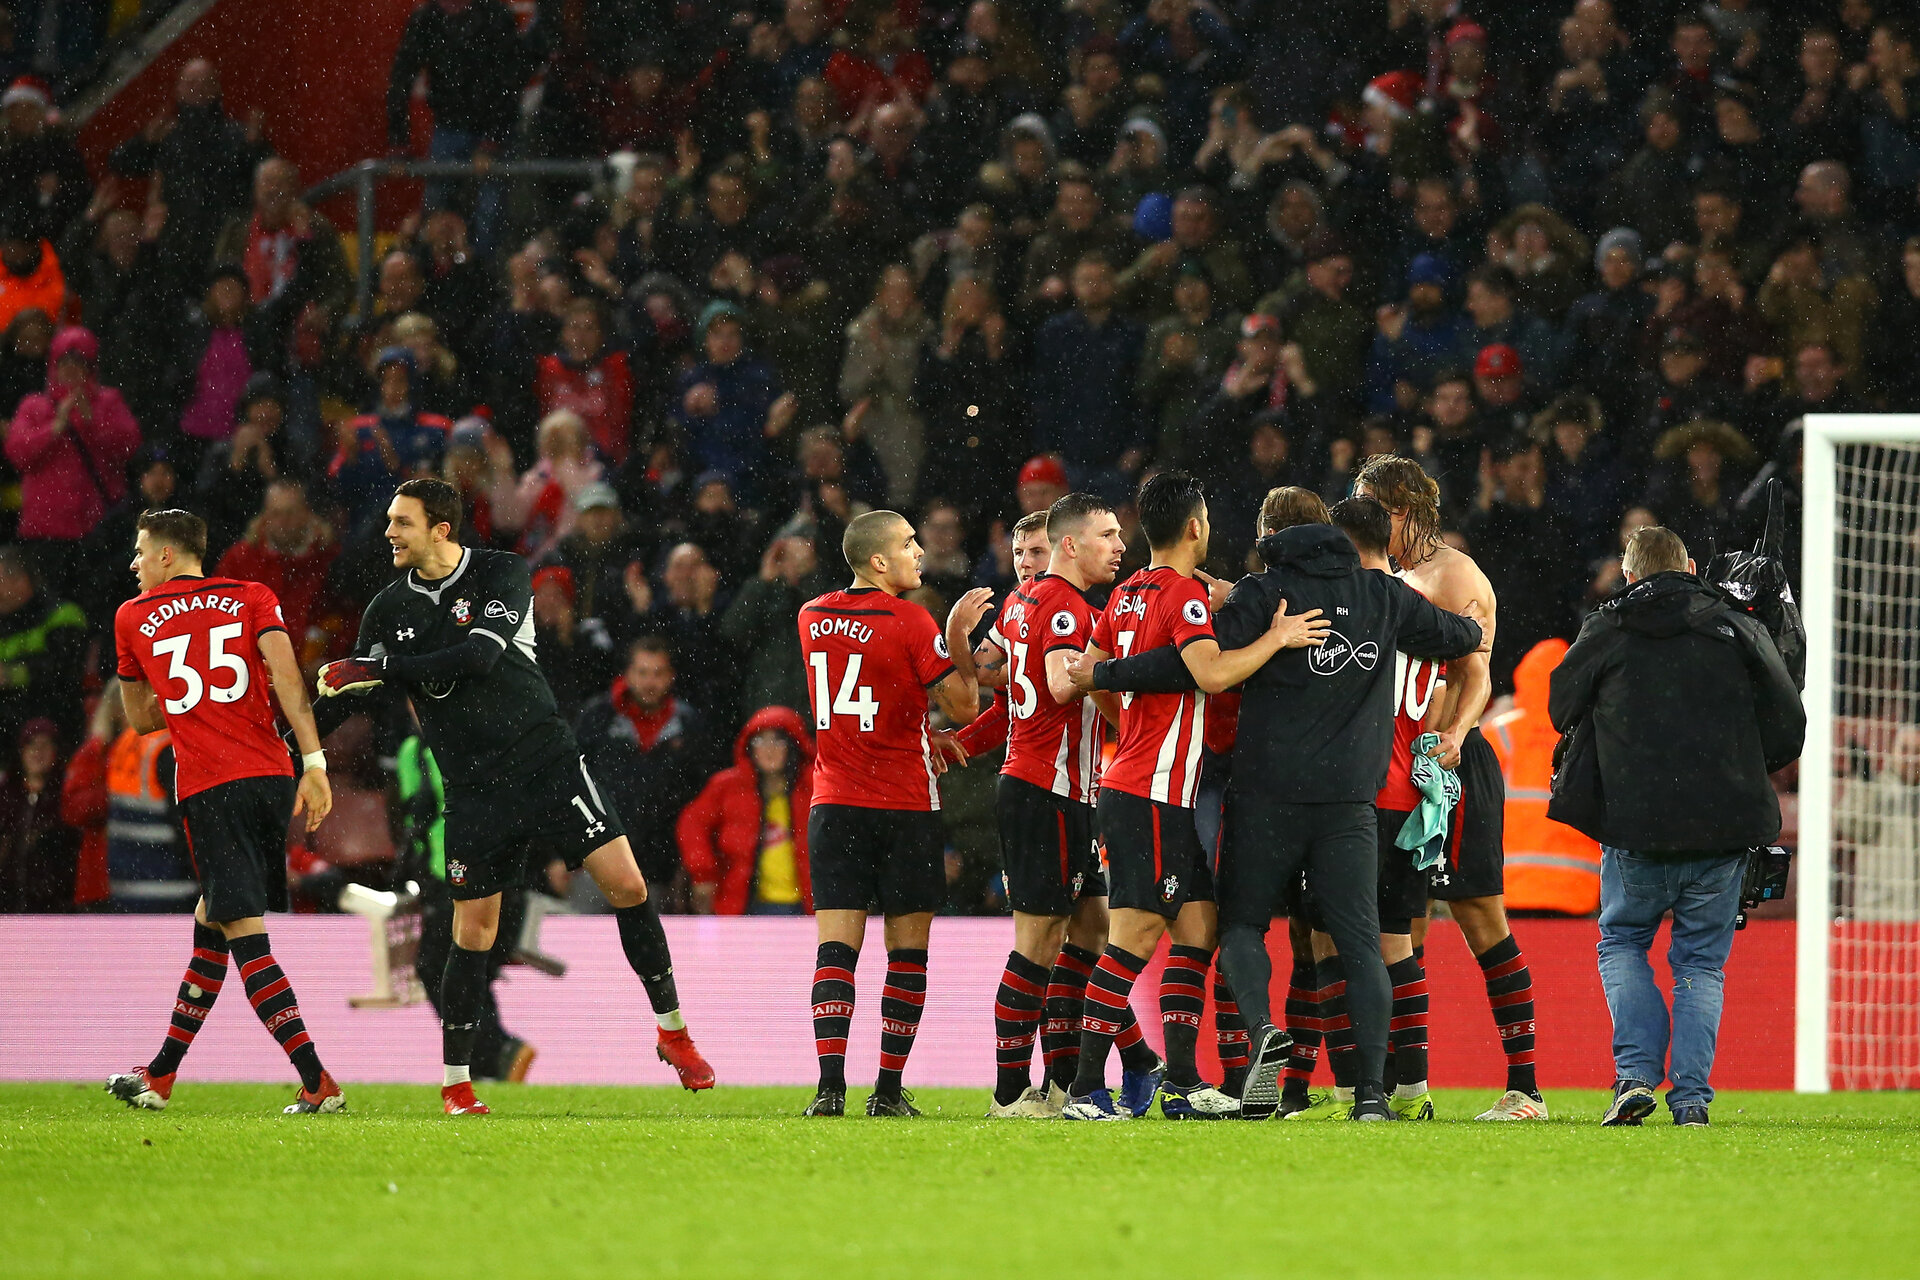 SOUTHAMPTON, ENGLAND - DECEMBER 16: Ralph Hasenhuttl celebrates with Southampton FC players after the final whistle is blown for the Premier League match between Southampton FC and Arsenal FC at St Mary's Stadium on December 16, 2018 in Southampton, United Kingdom. (Photo by James Bridle - Southampton FC/Southampton FC via Getty Images)